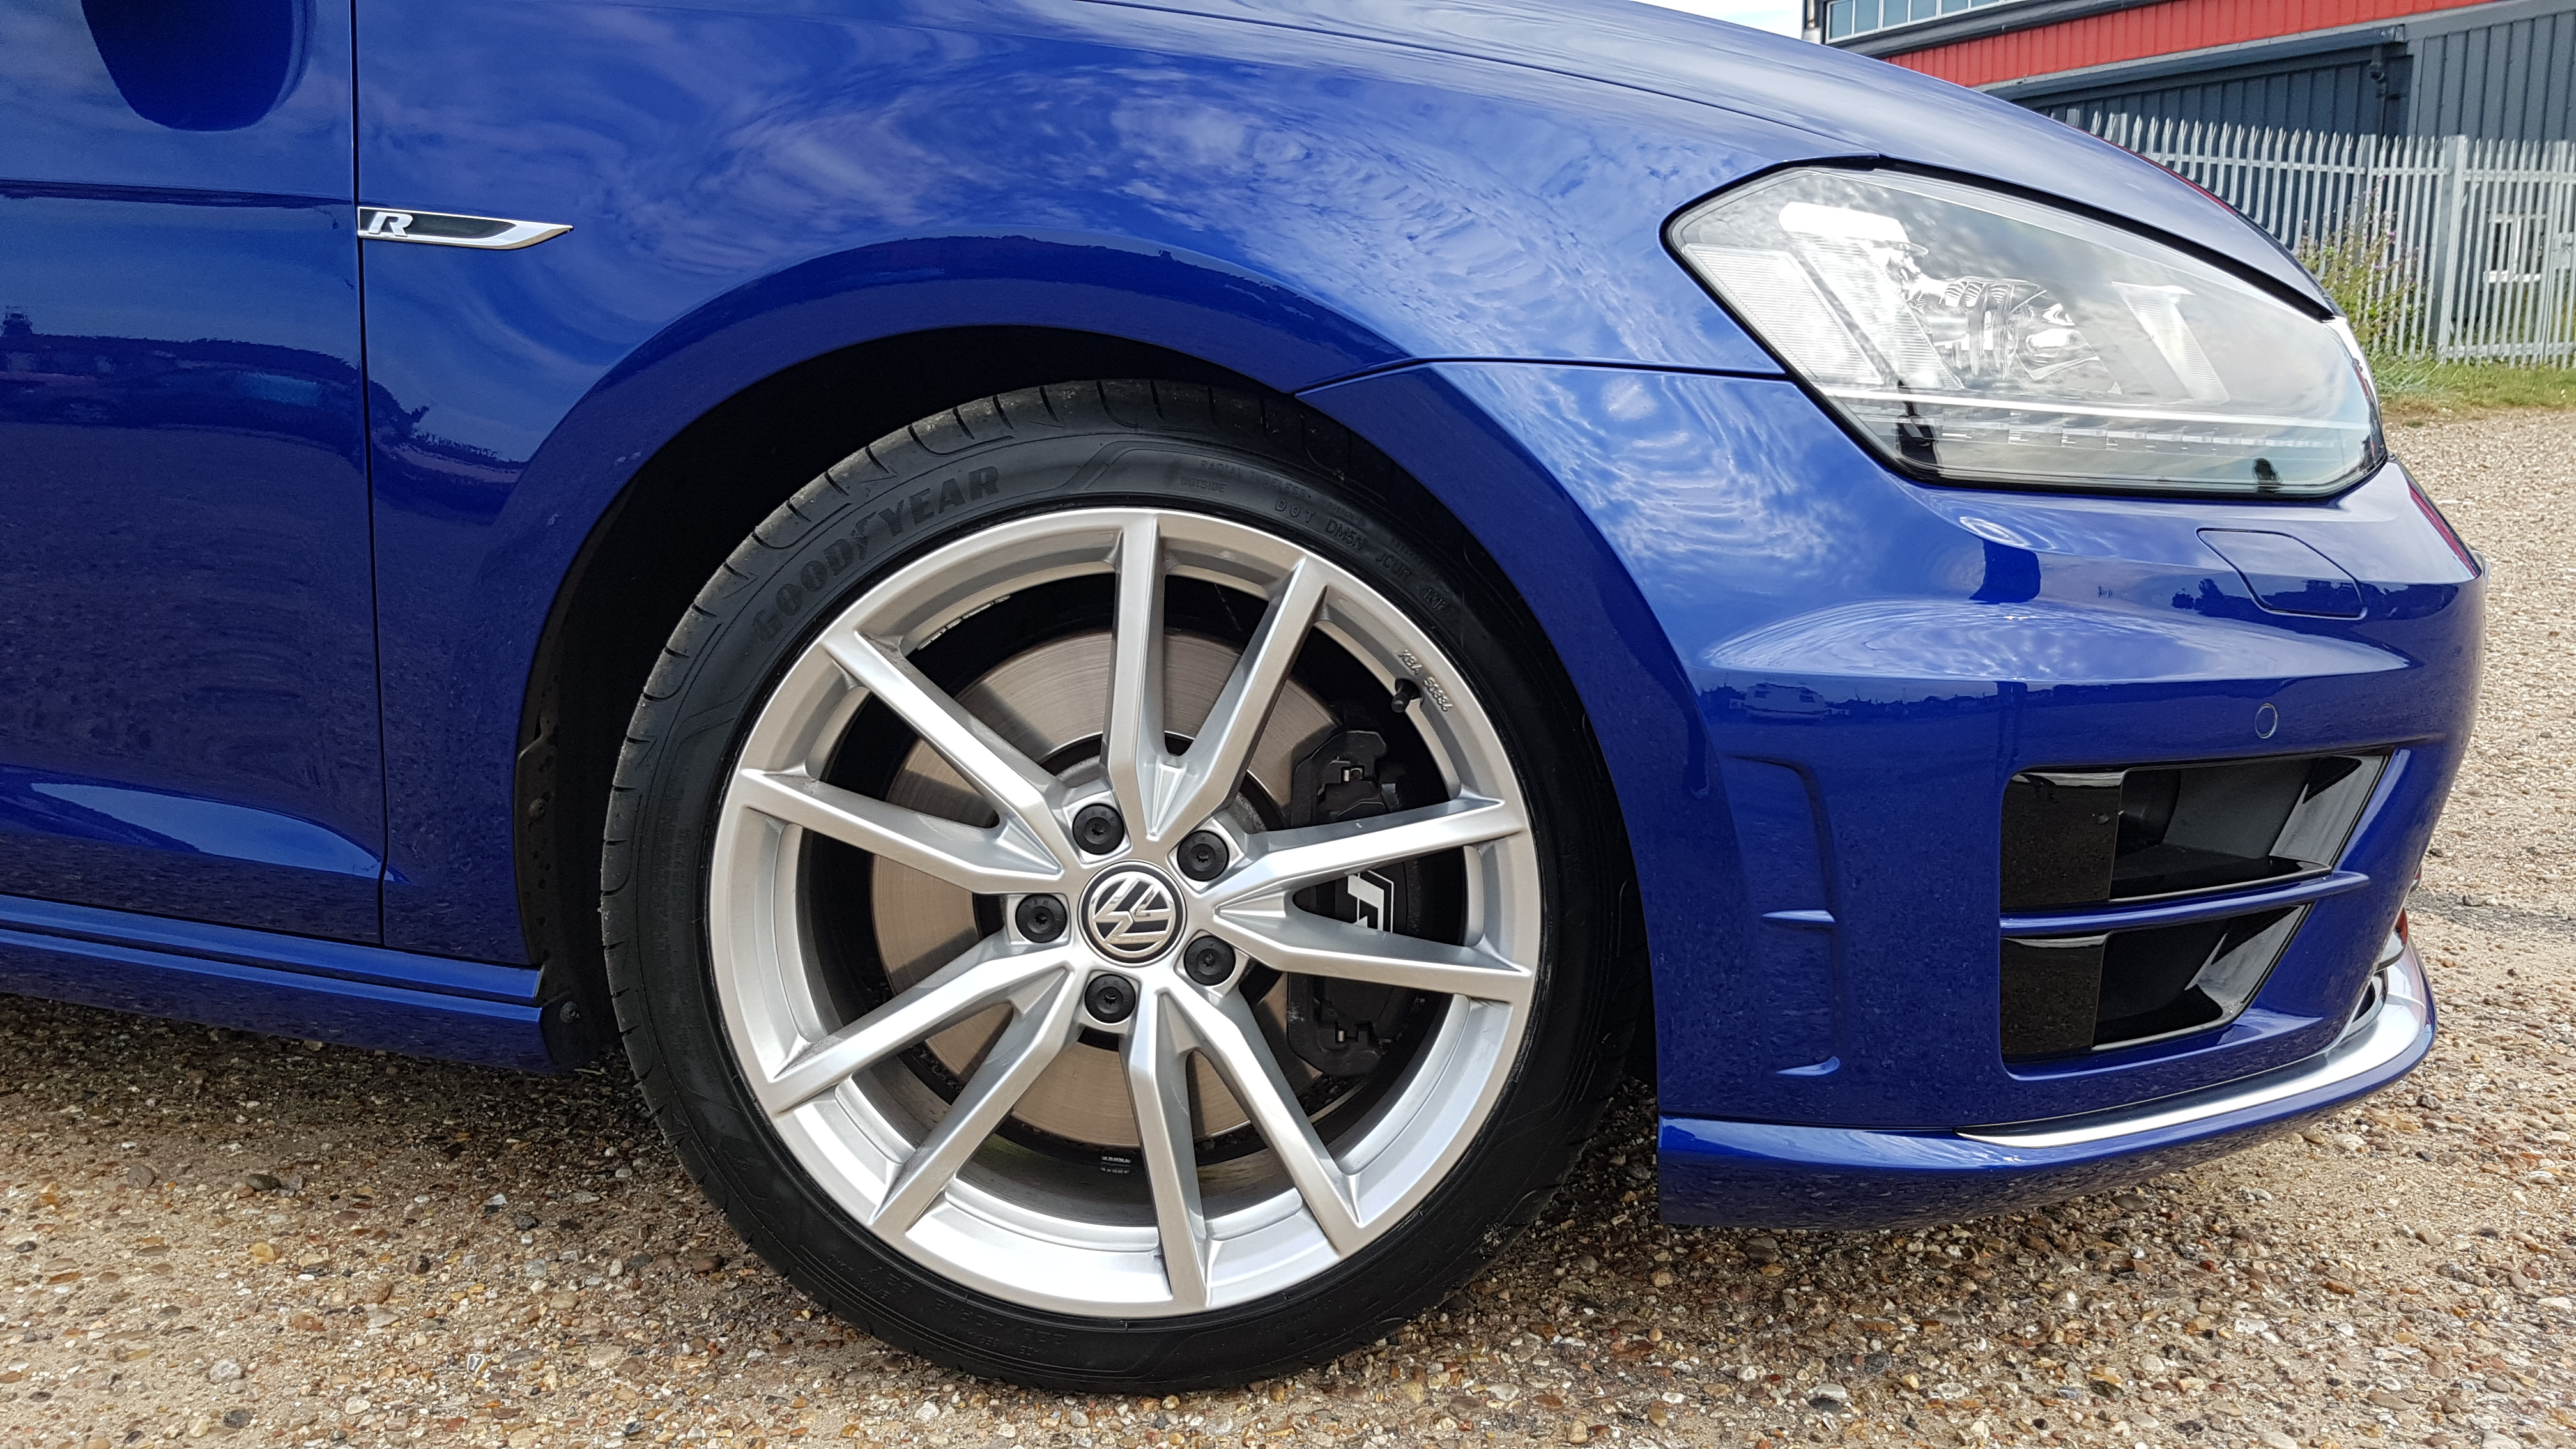 18 Inch Pretorias In Sterling Silver Fitted Installed Modifying Your Golf R Mk7 Vwroc Vw R Owners Club